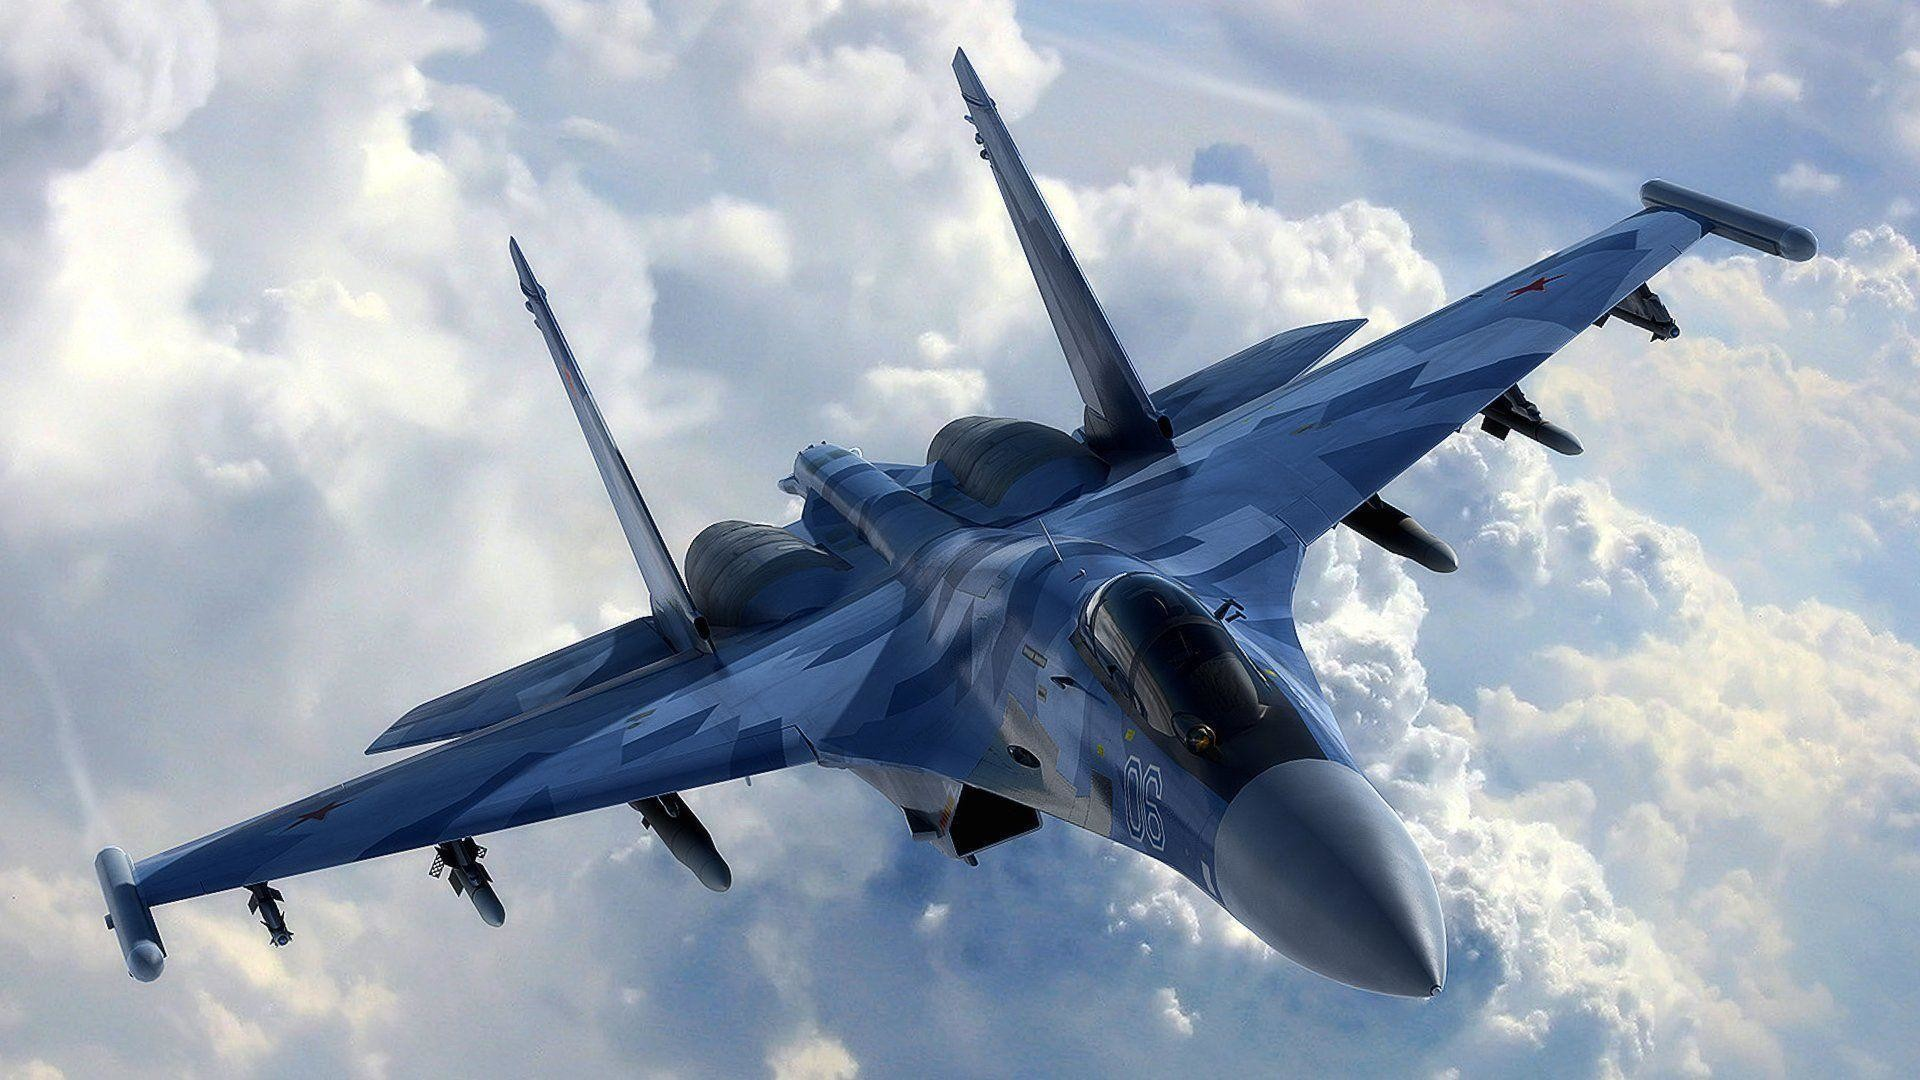 Military Aircraft Wallpaper 70 Pictures